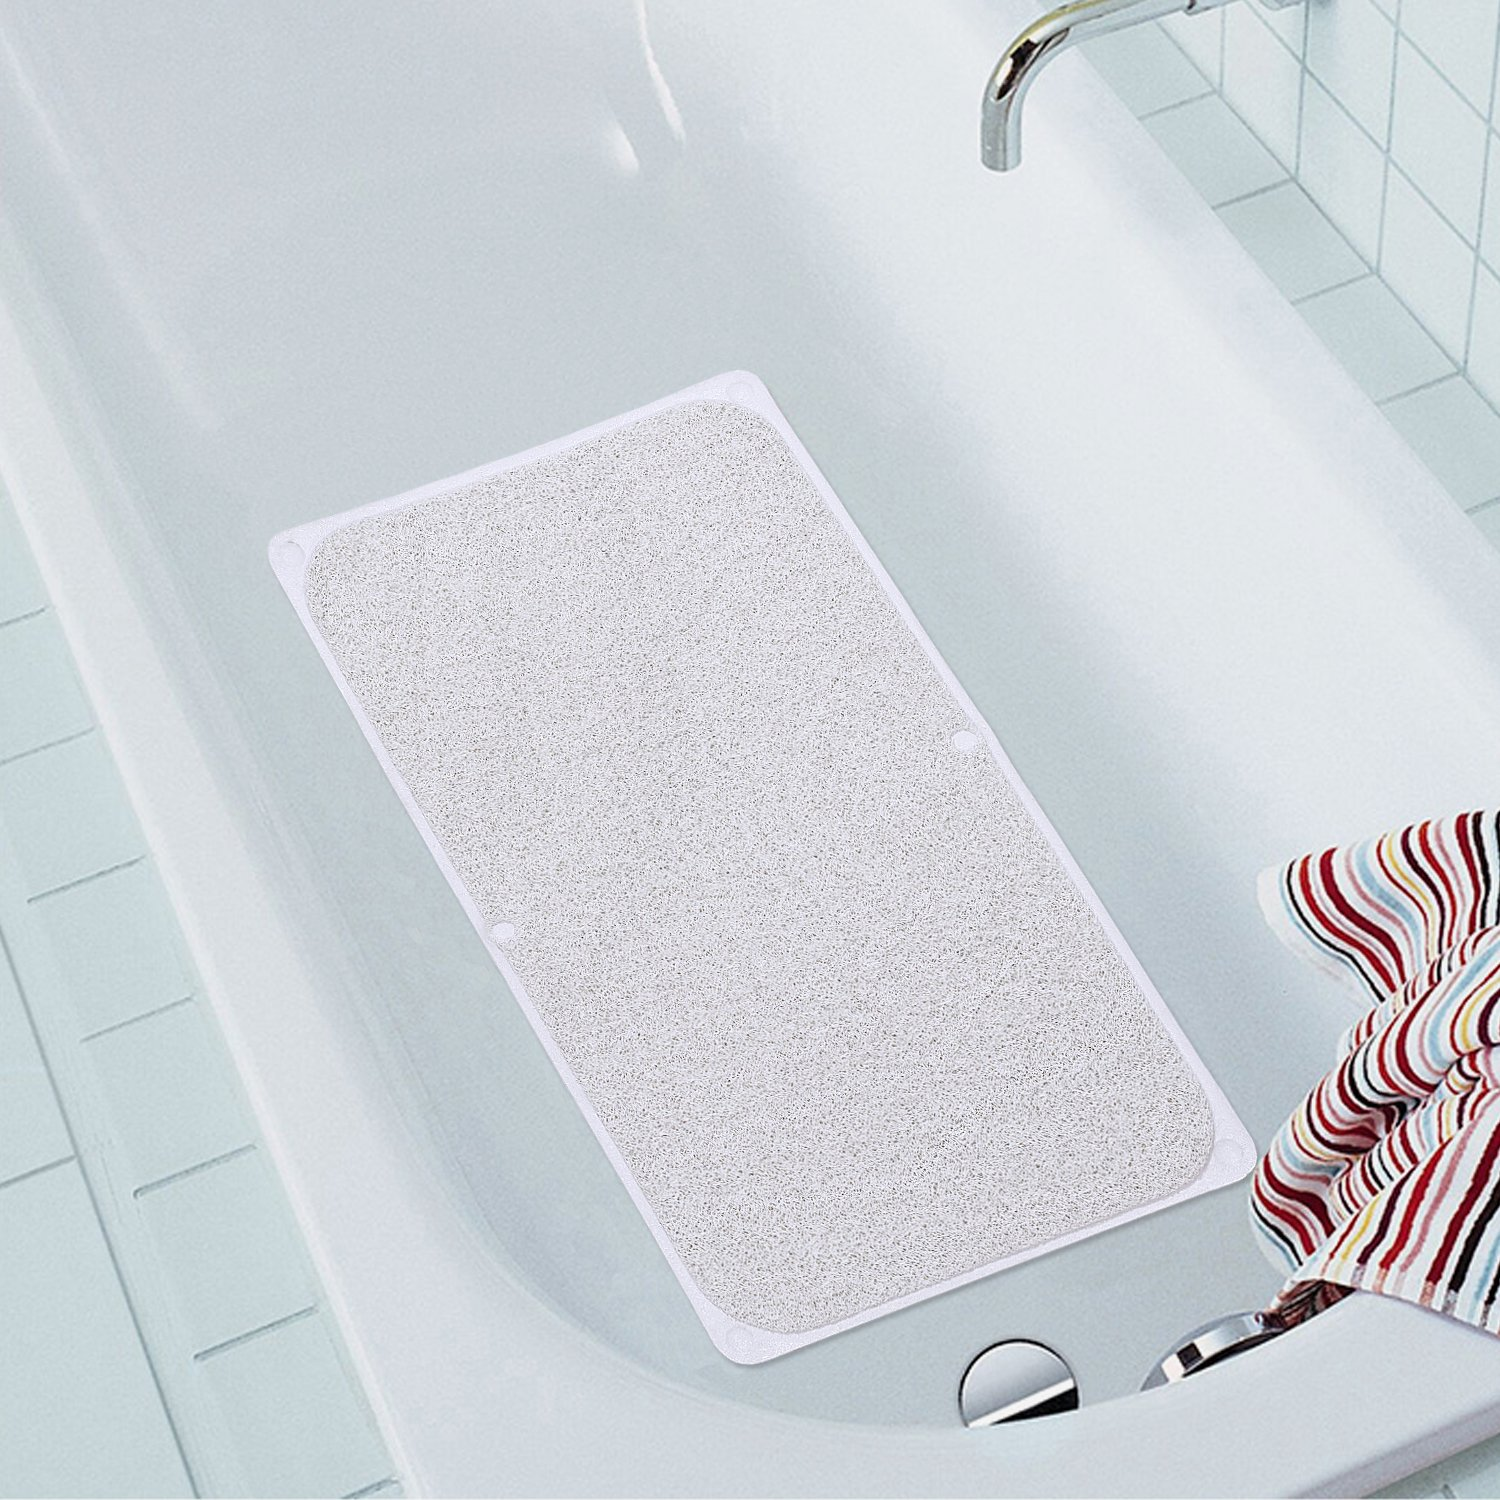 Flamingo P Slip-Resistant Shower Mat with Super Suction Cups for Shower or Bathroom - Great for The Elderly and Children,17 x 29 inh, White, One Pack